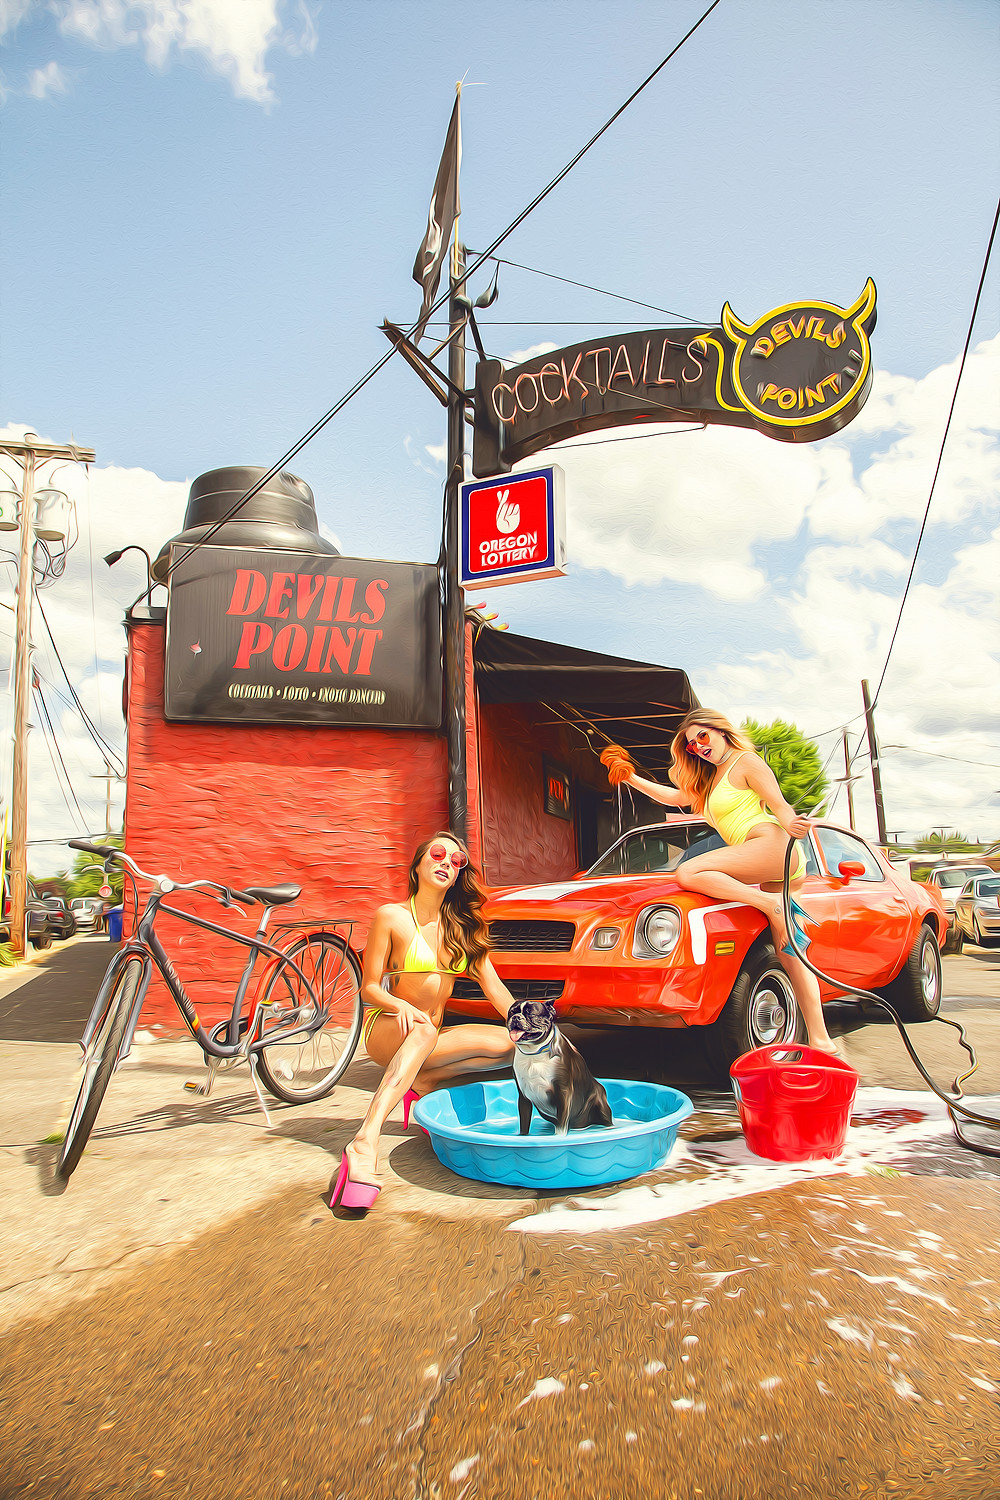 Devils Point 11th Annual Bikini Car & Dog Wash this Sunday!